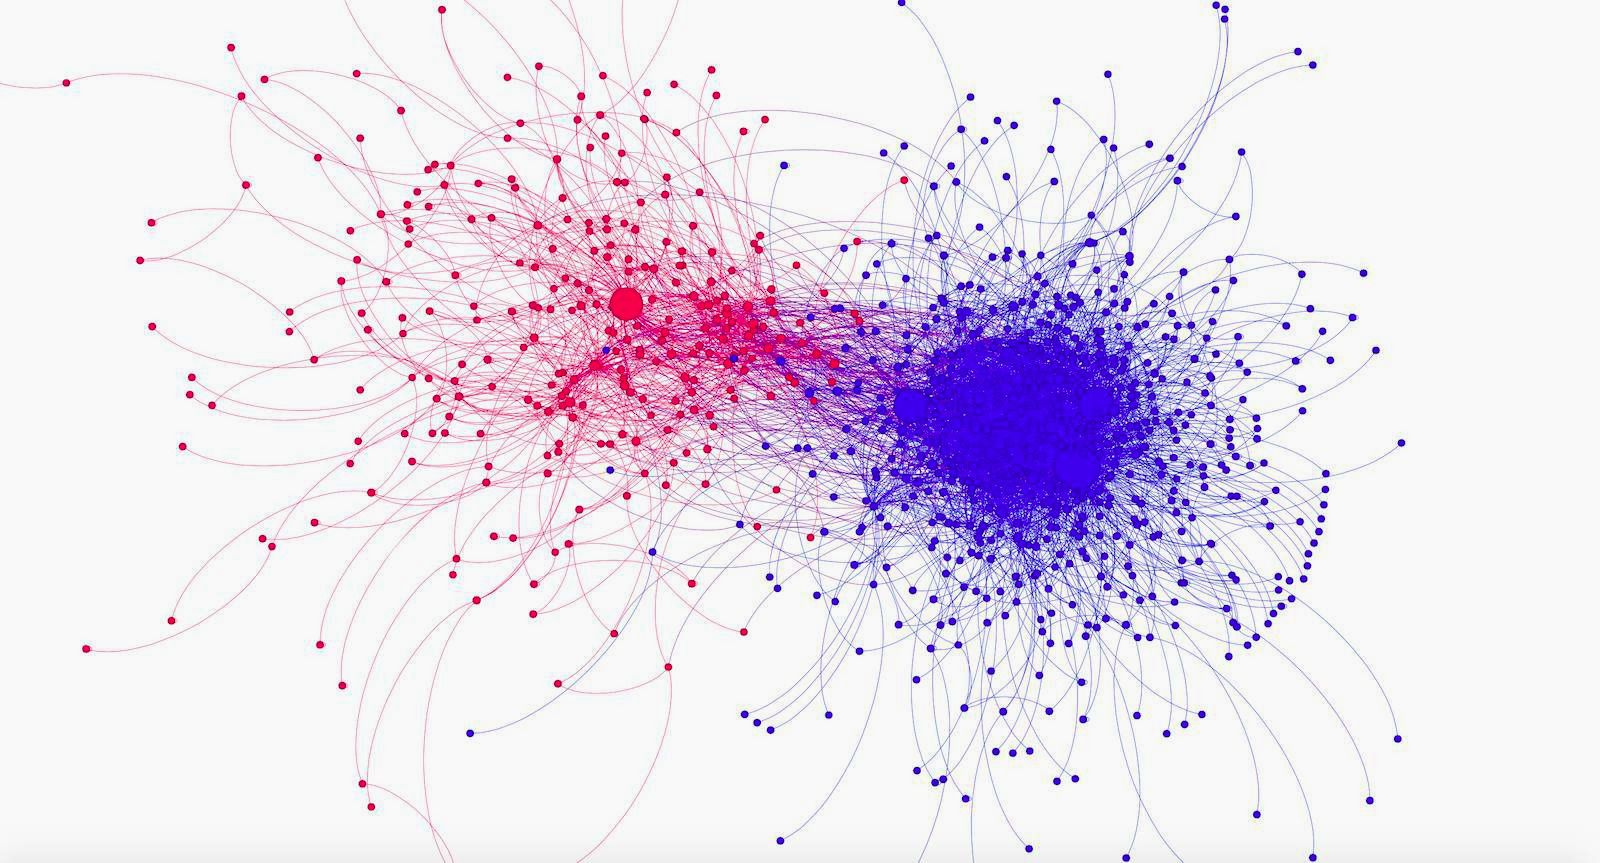 Quartz:See how red tweeters and blue tweeters ignore each other on Ferguson